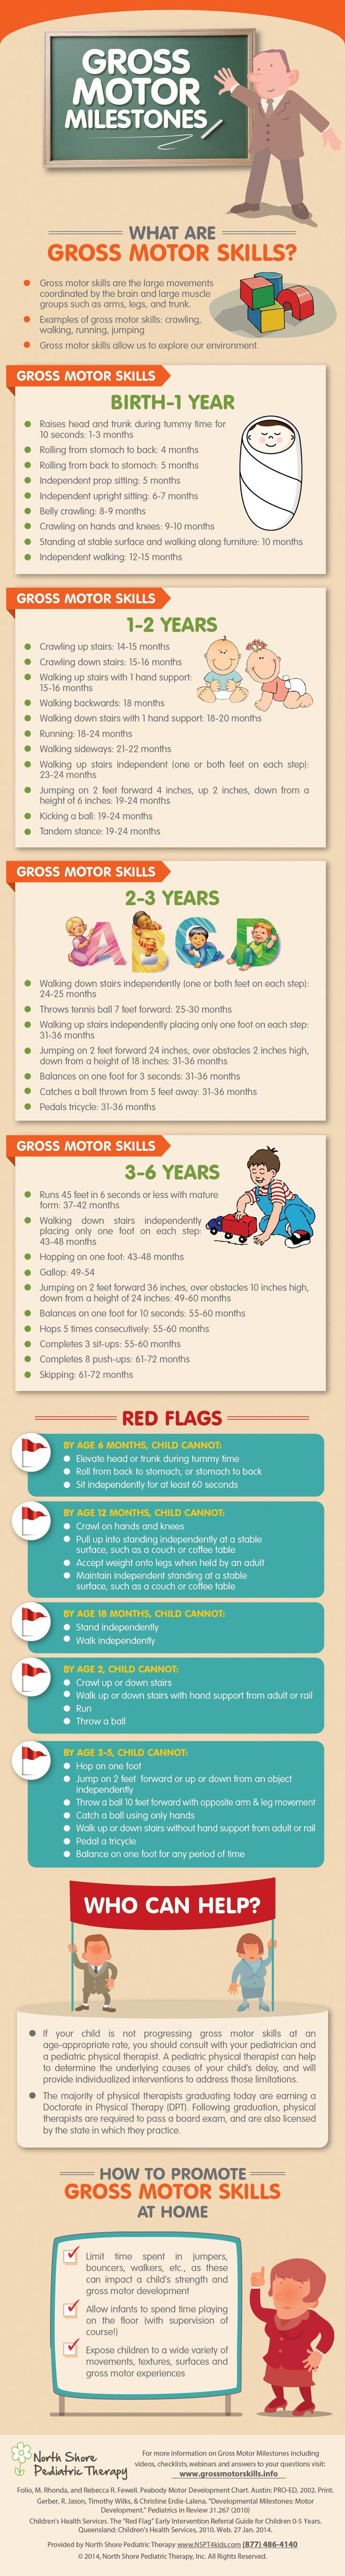 What are the Gross Motor Milestones for children birth to 6 years old?